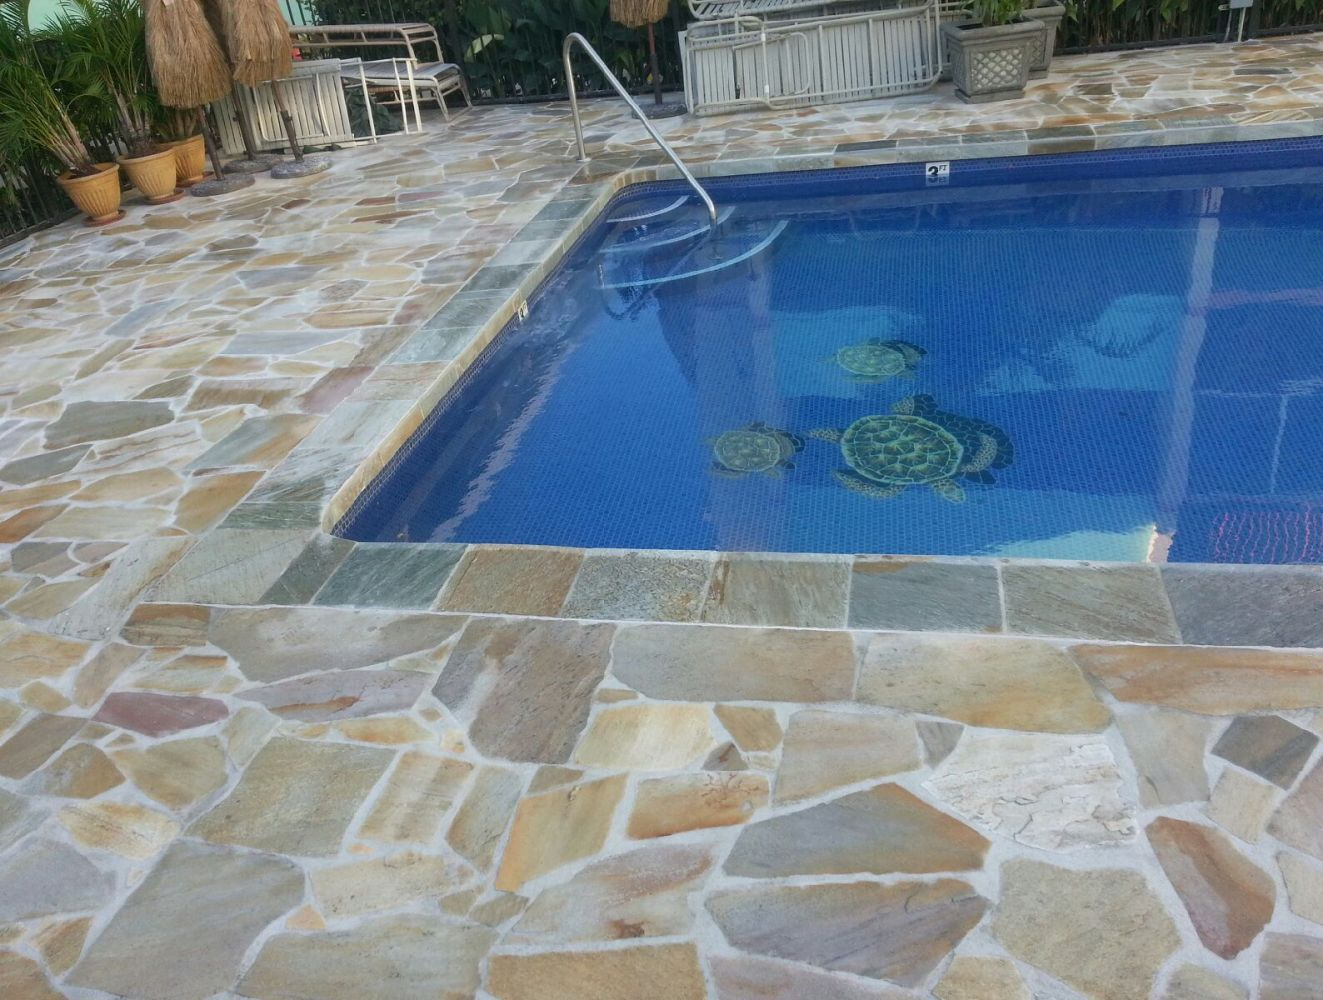 Hawaii's most experienced marble, tile and stone flooring contractor